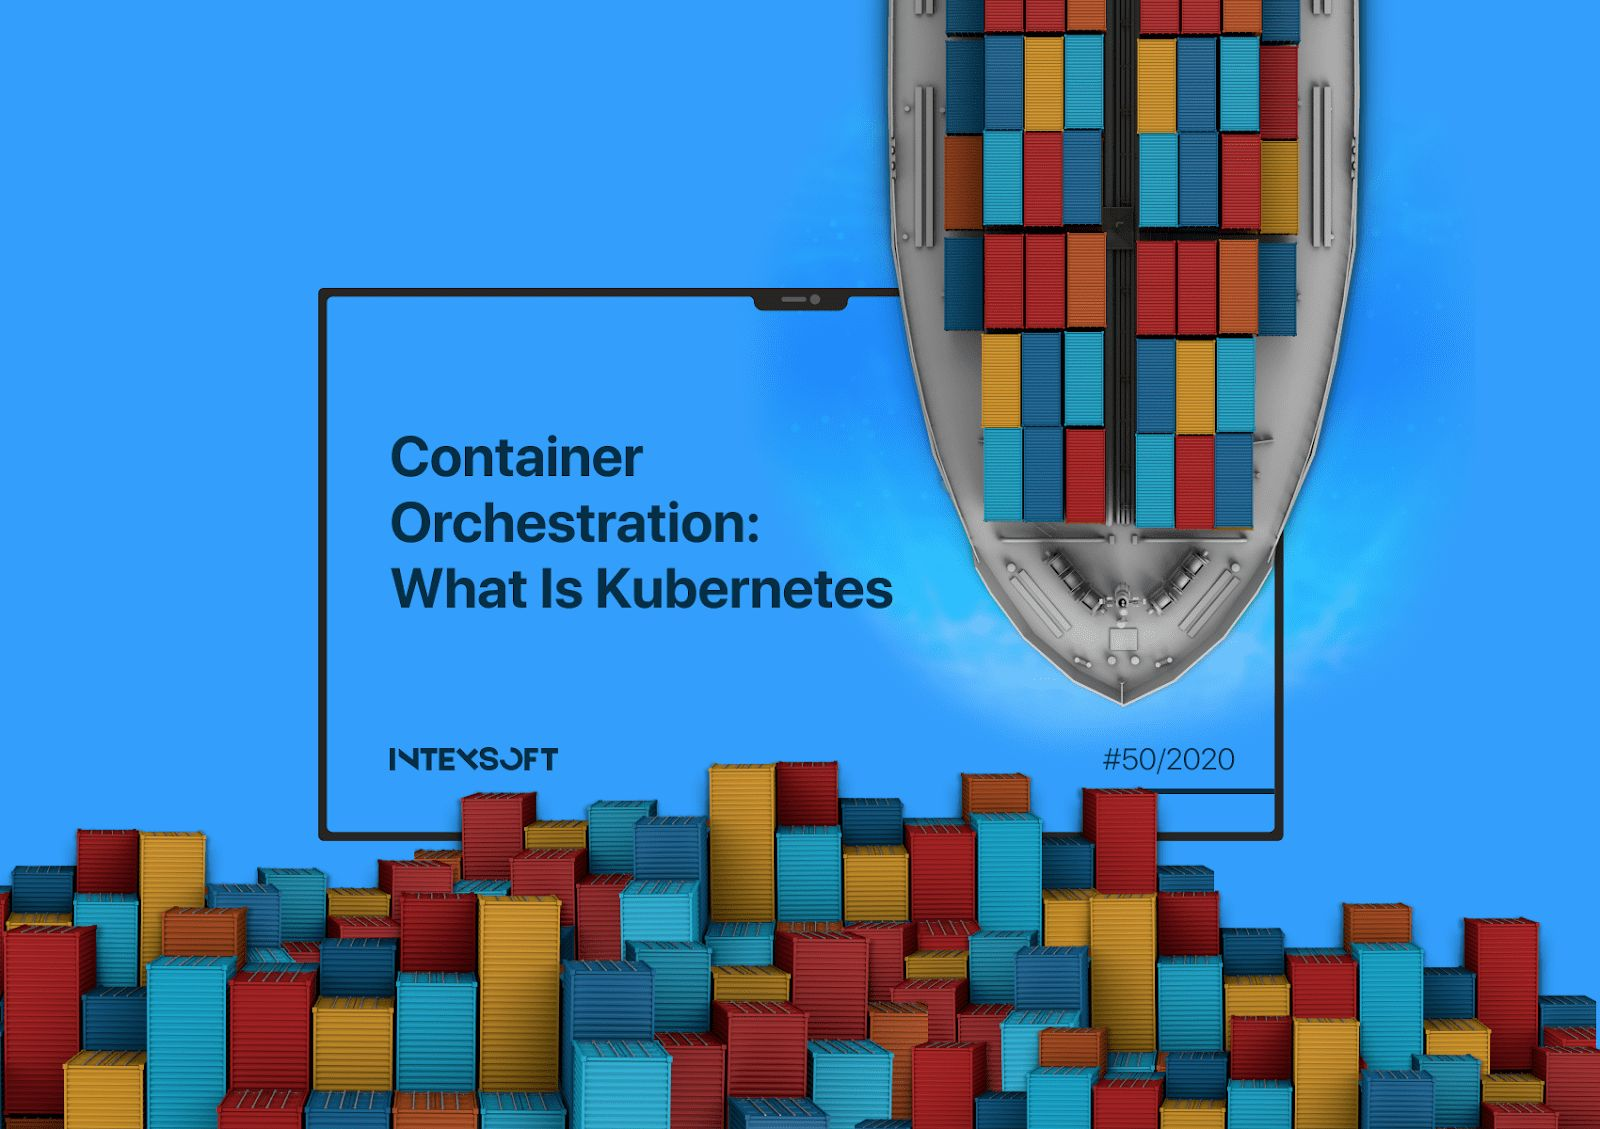 /the-ultimate-beginners-guide-to-kubernetes-and-container-orchestration-5d83354y feature image